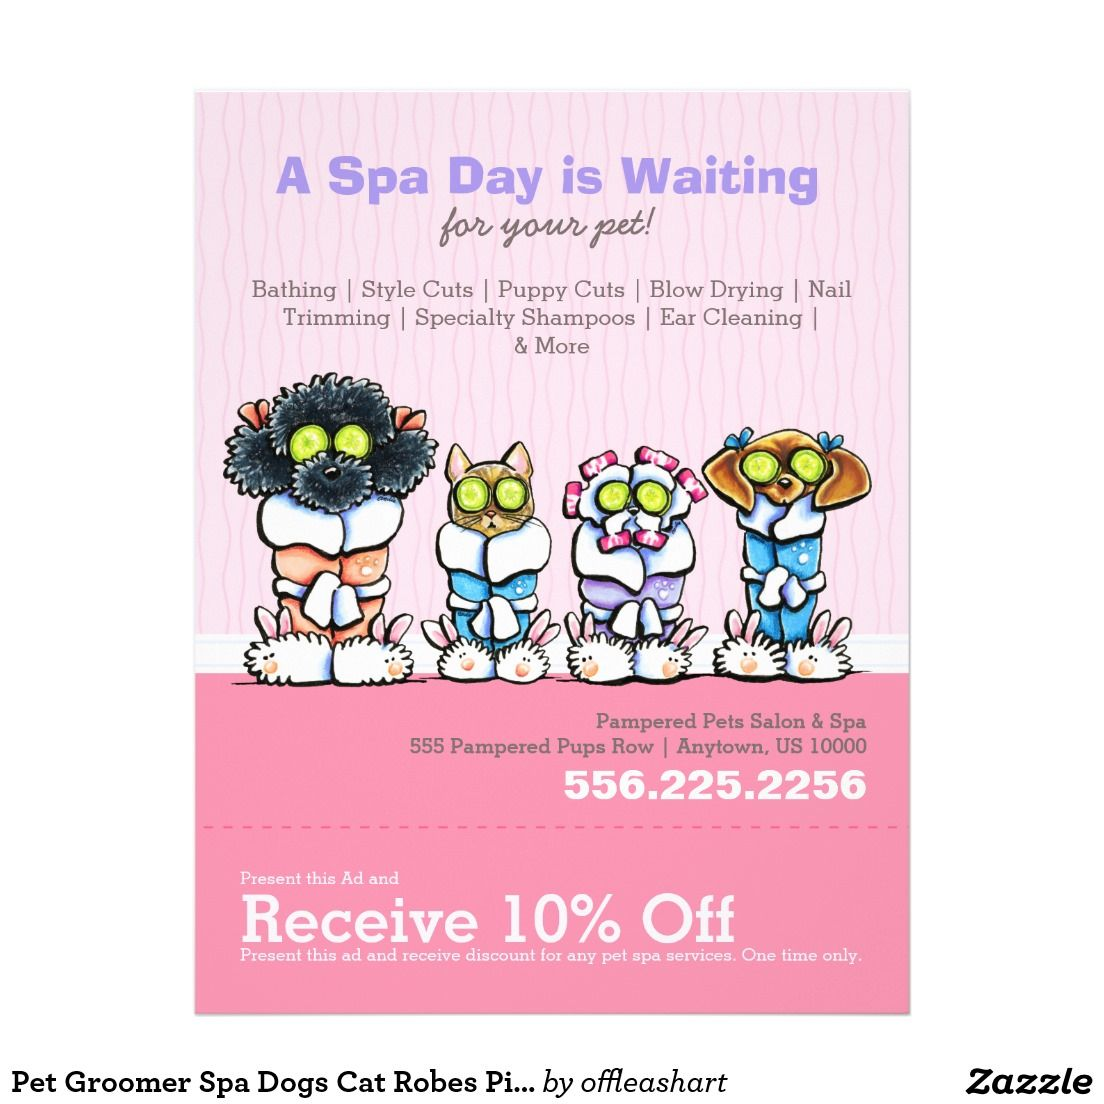 Pet Groomer Spa Dogs Cat Robes Pink Coupon Ad Flyer Zazzle Com